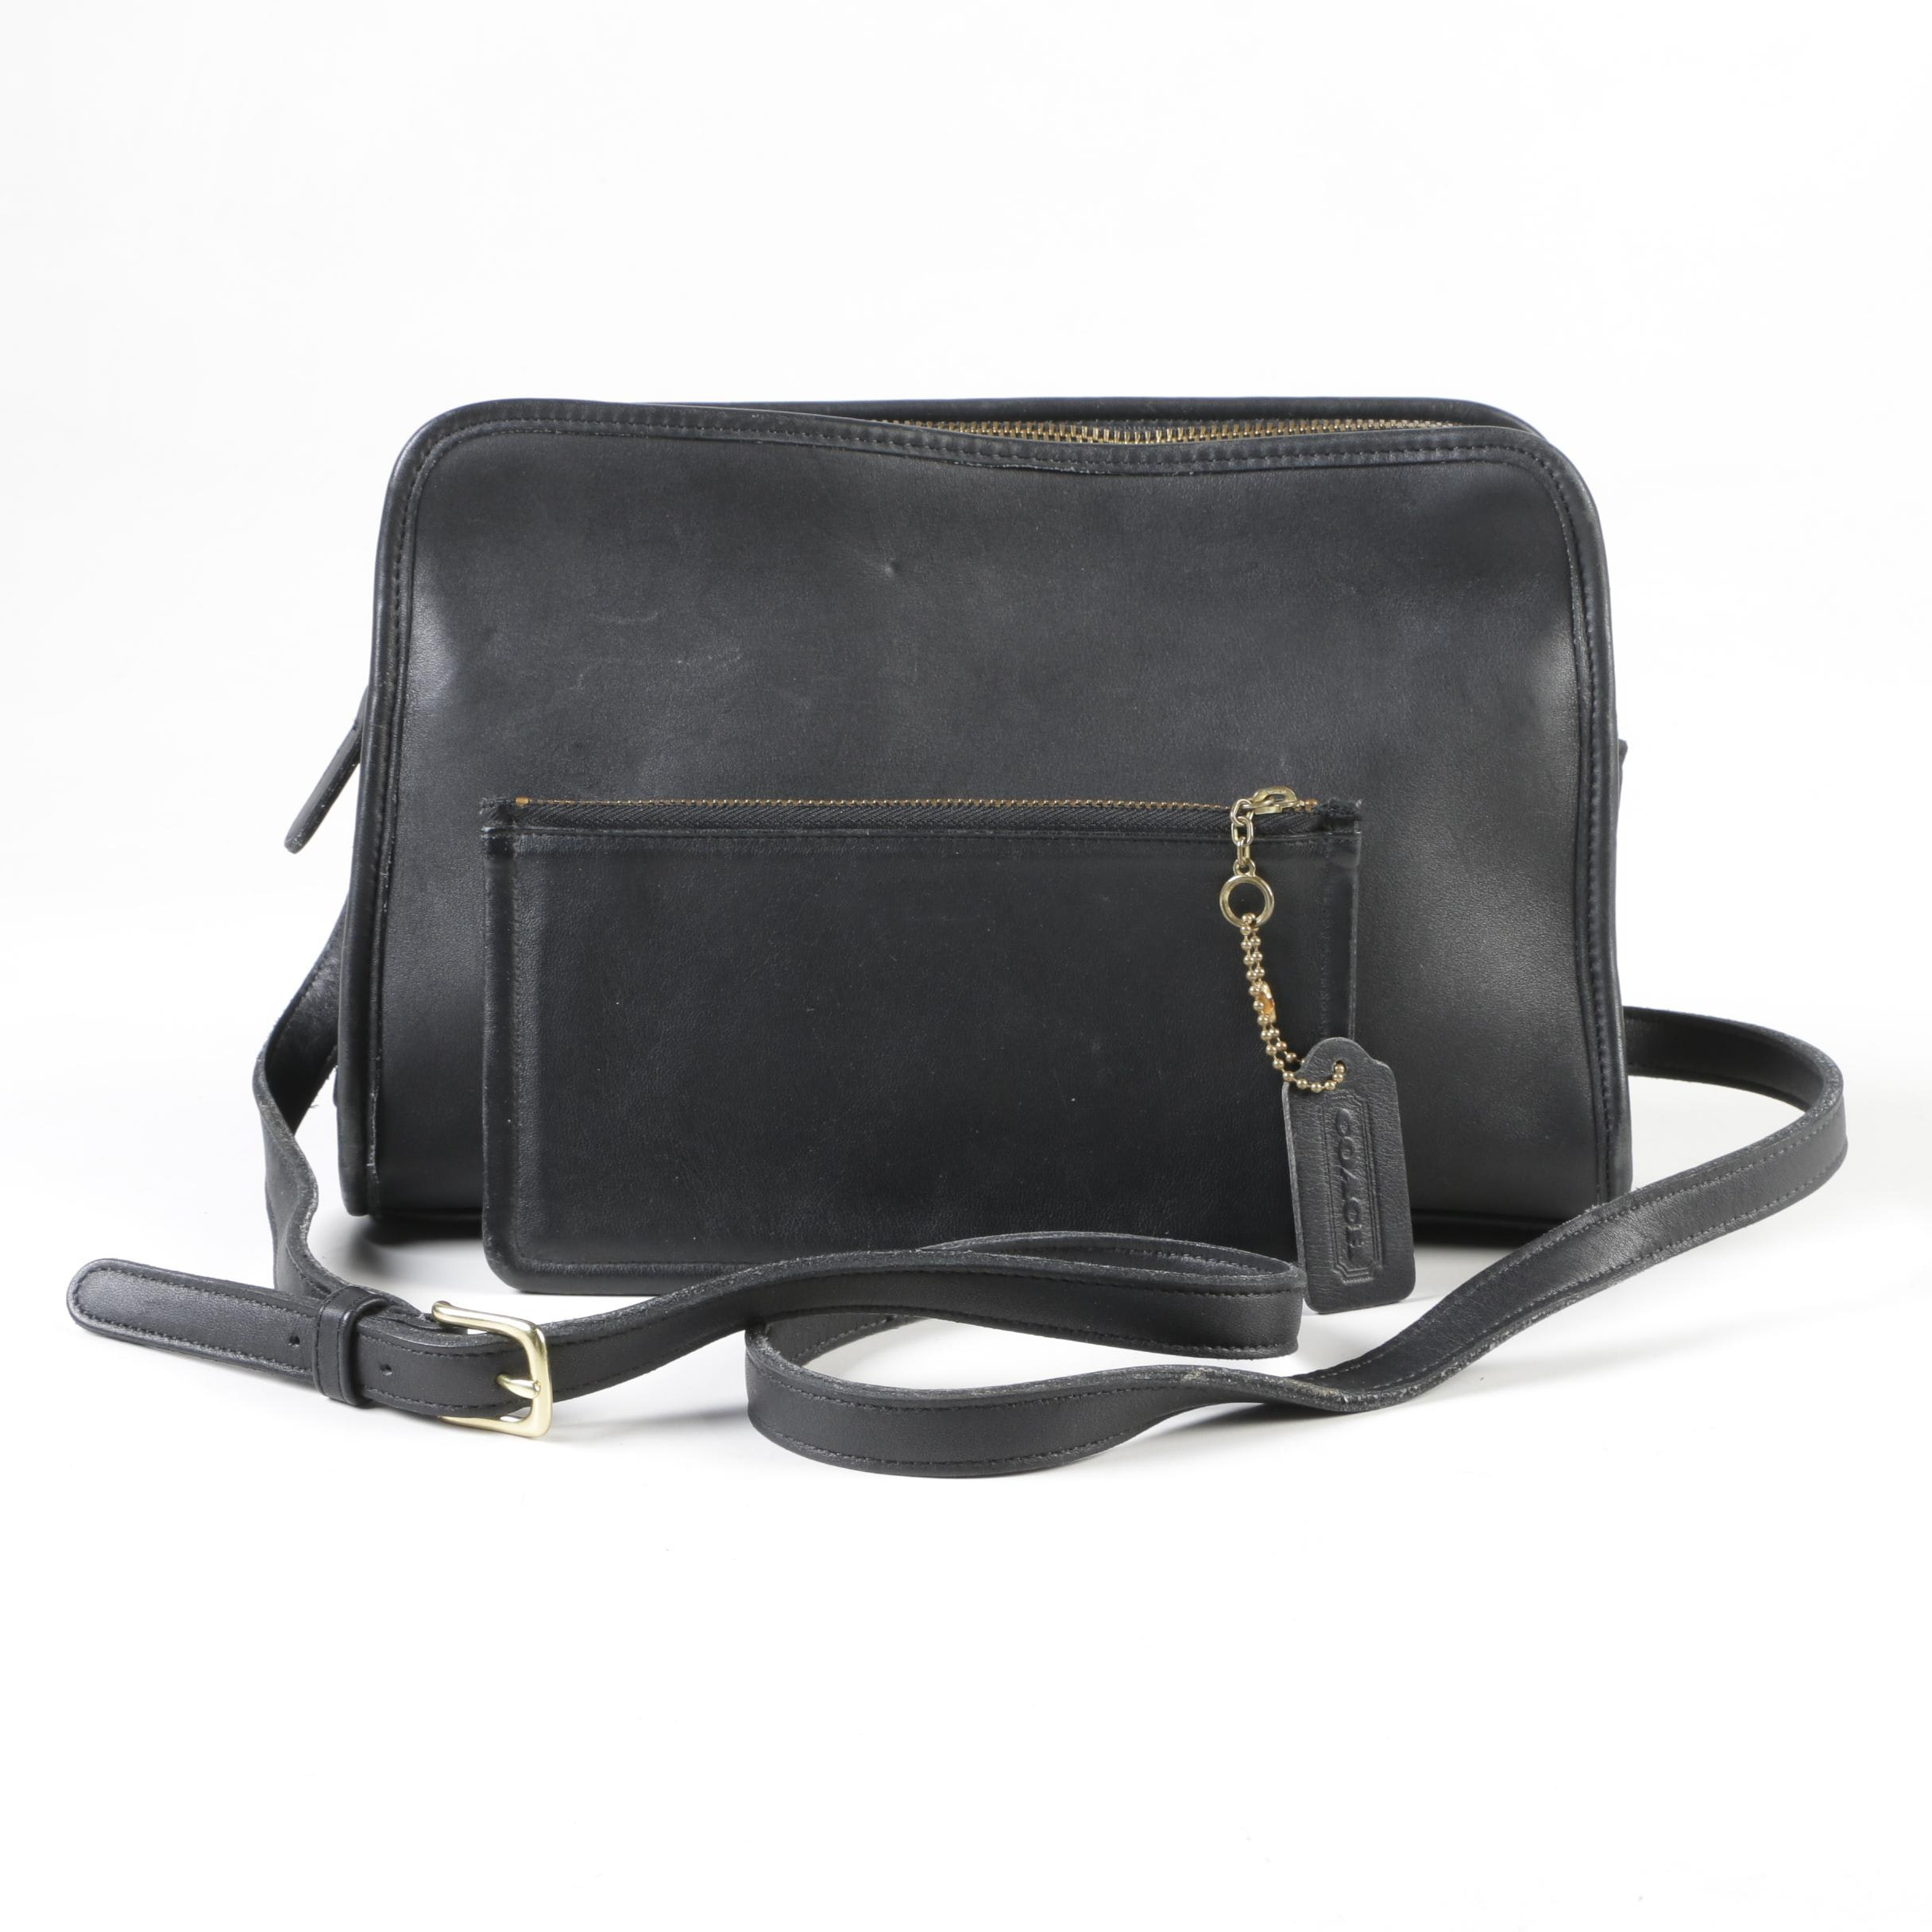 Coach Sutton Black Leather Crossbody Bag and Pouch